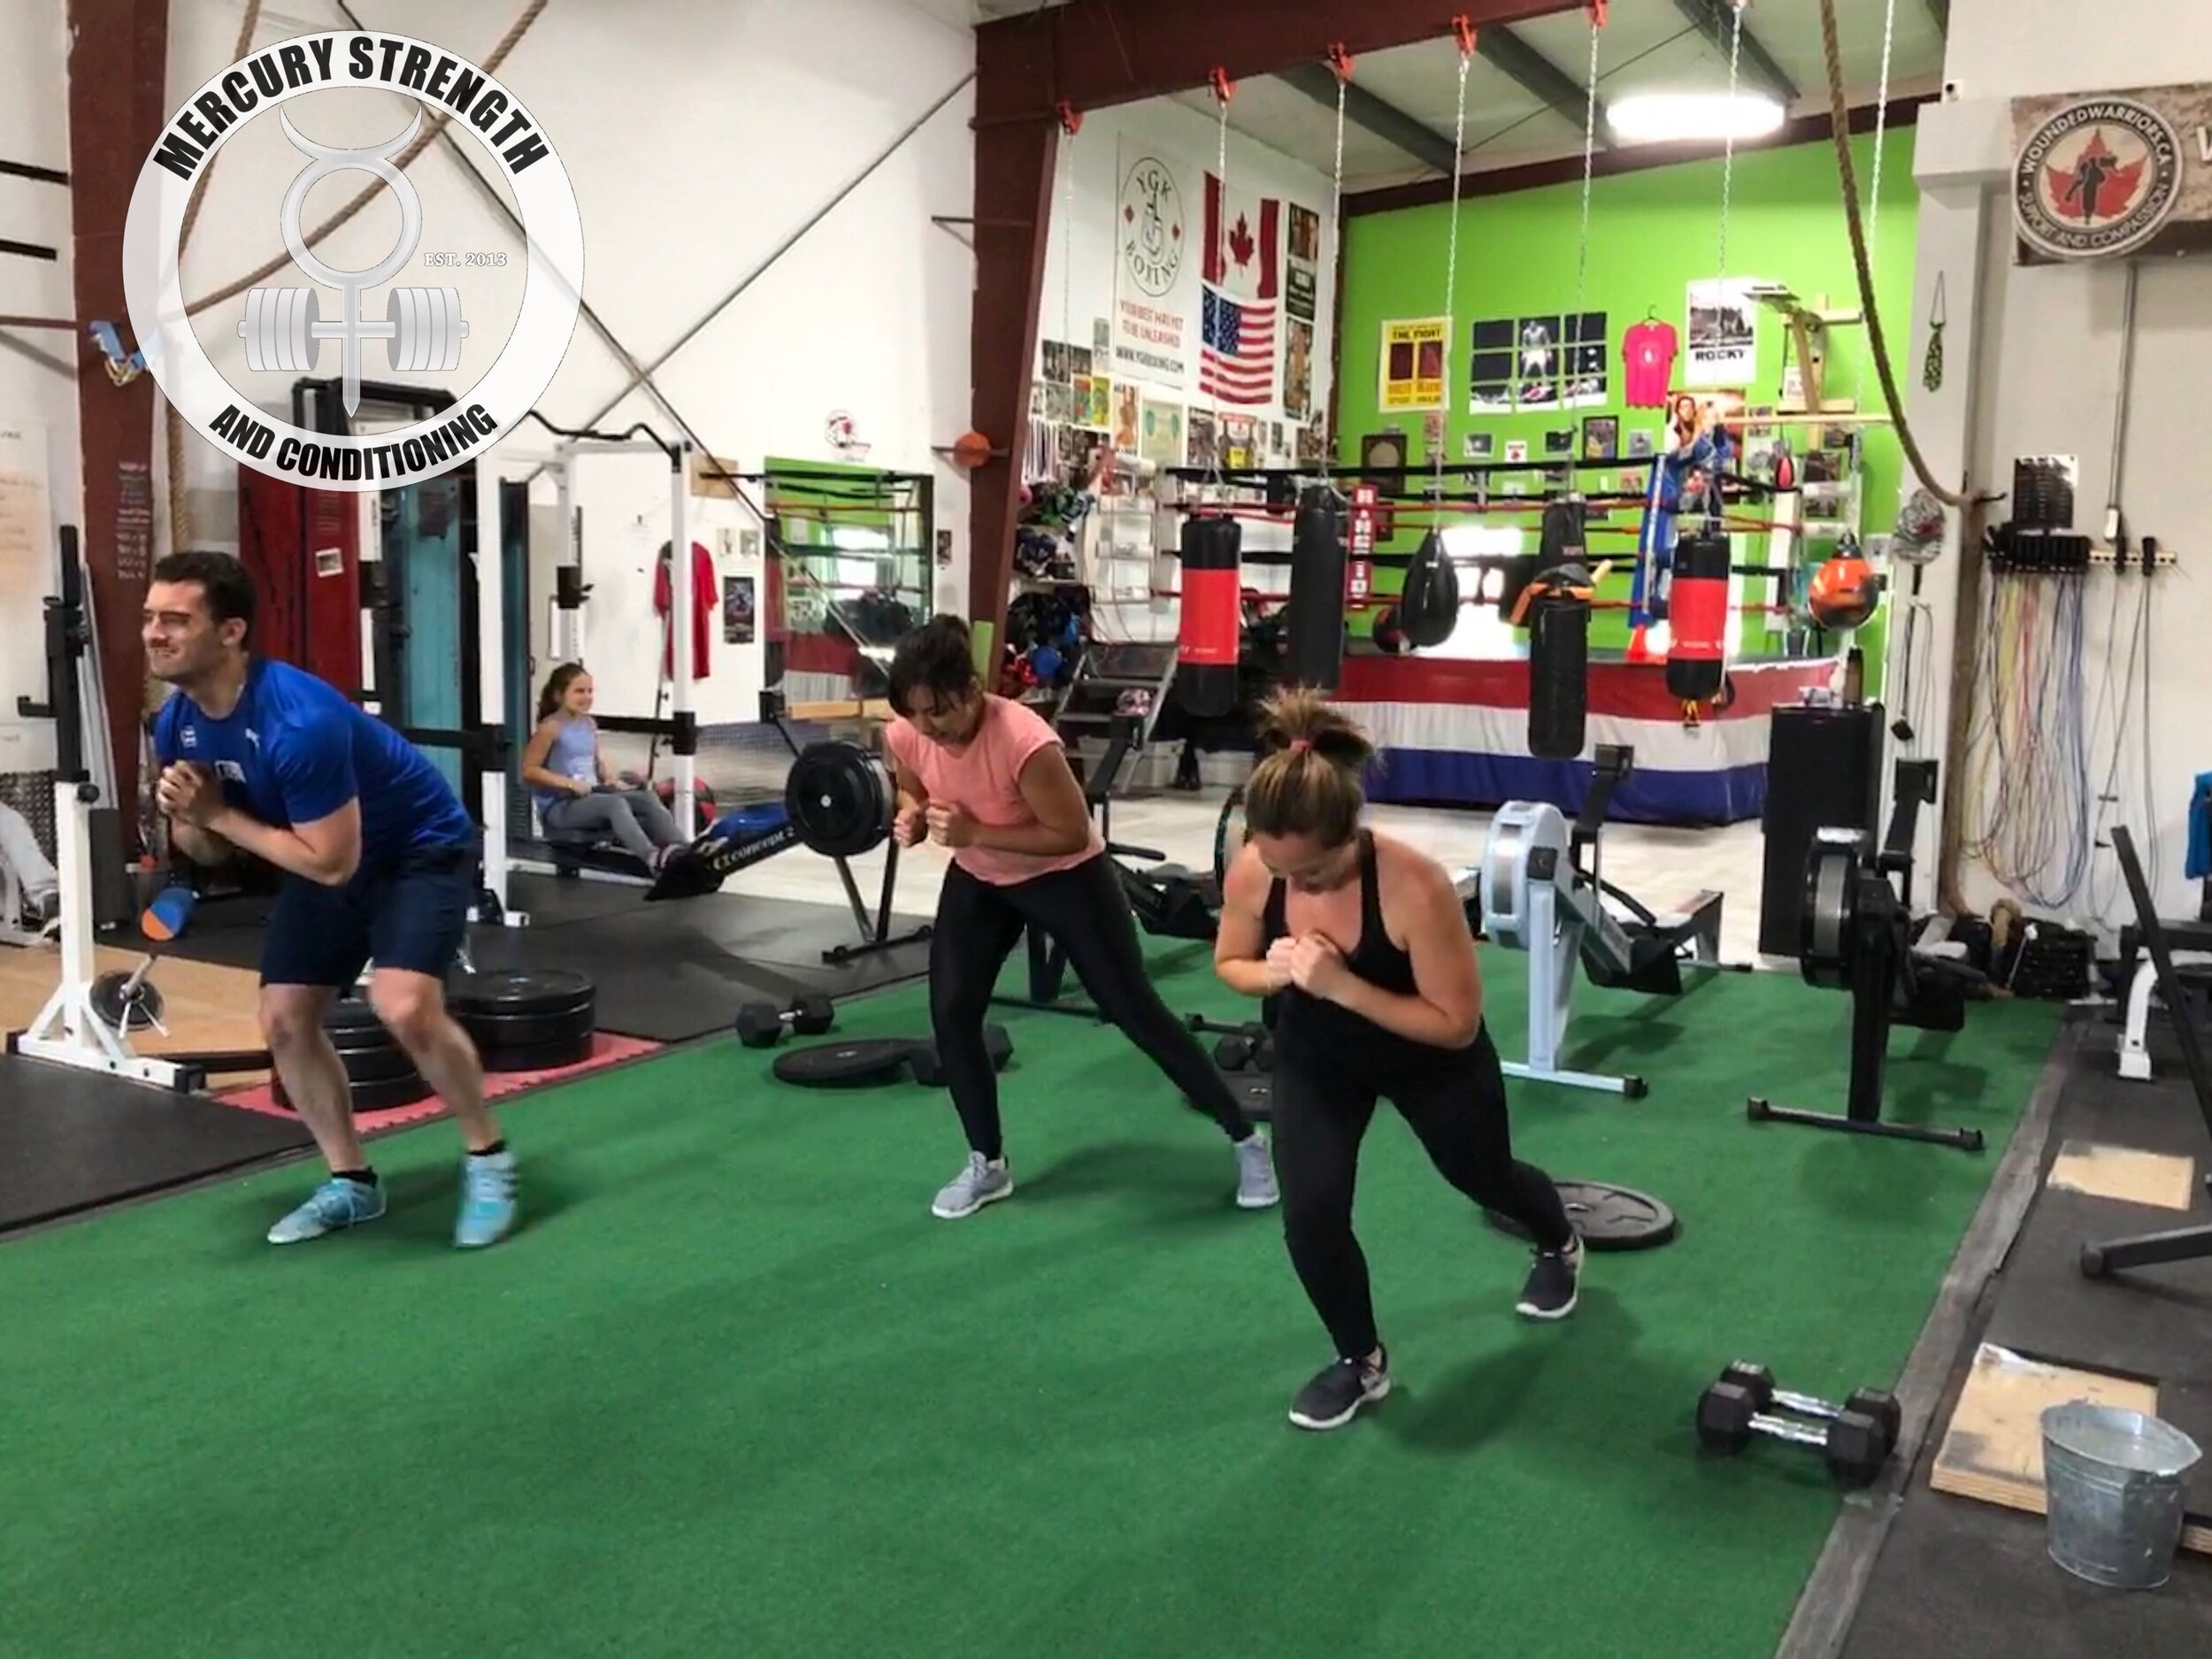 Gym-powerlifting-Olympic lifting-fitness-personal training-training-bootcamp-crossfit-kingston-gym-kingston gym-physique-body building-nutrition-kids-mercury-strength-conditioning-athlete-ontario powerlifting association-OPA-Canadian powerlifting federation-CPF-Skater Squats.JPG